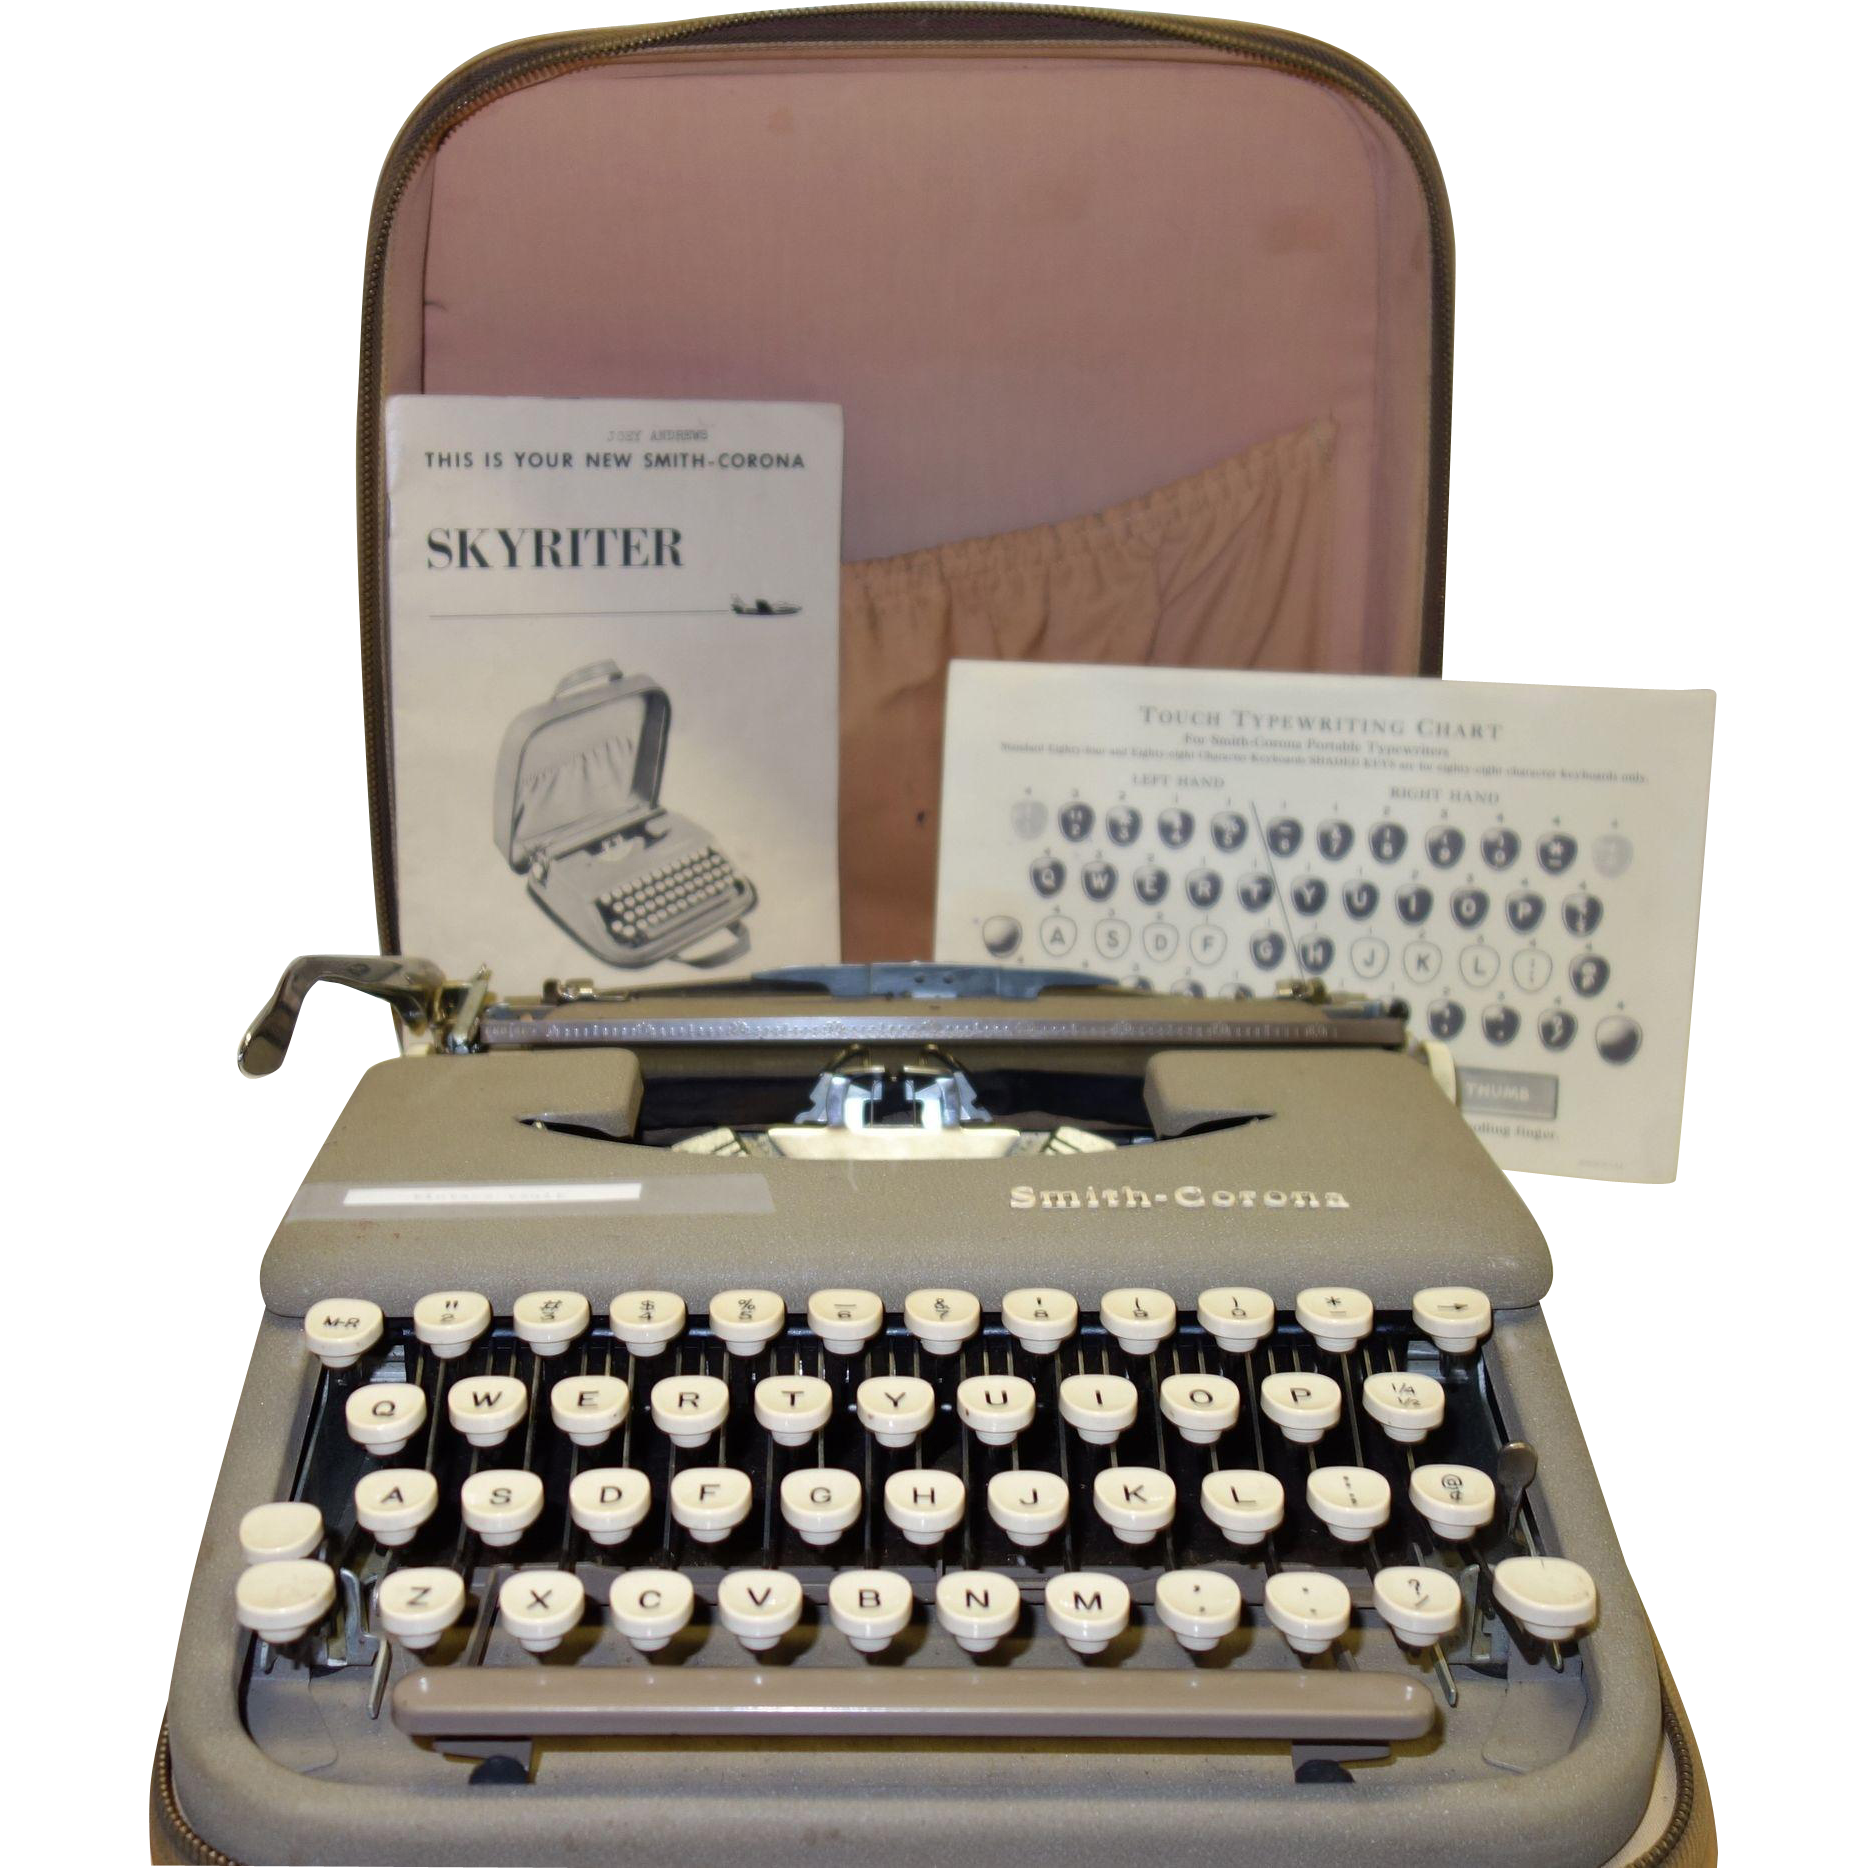 Vintage Fifties Smith-Corona Skyriter Portable Typewriter with Original Instructions